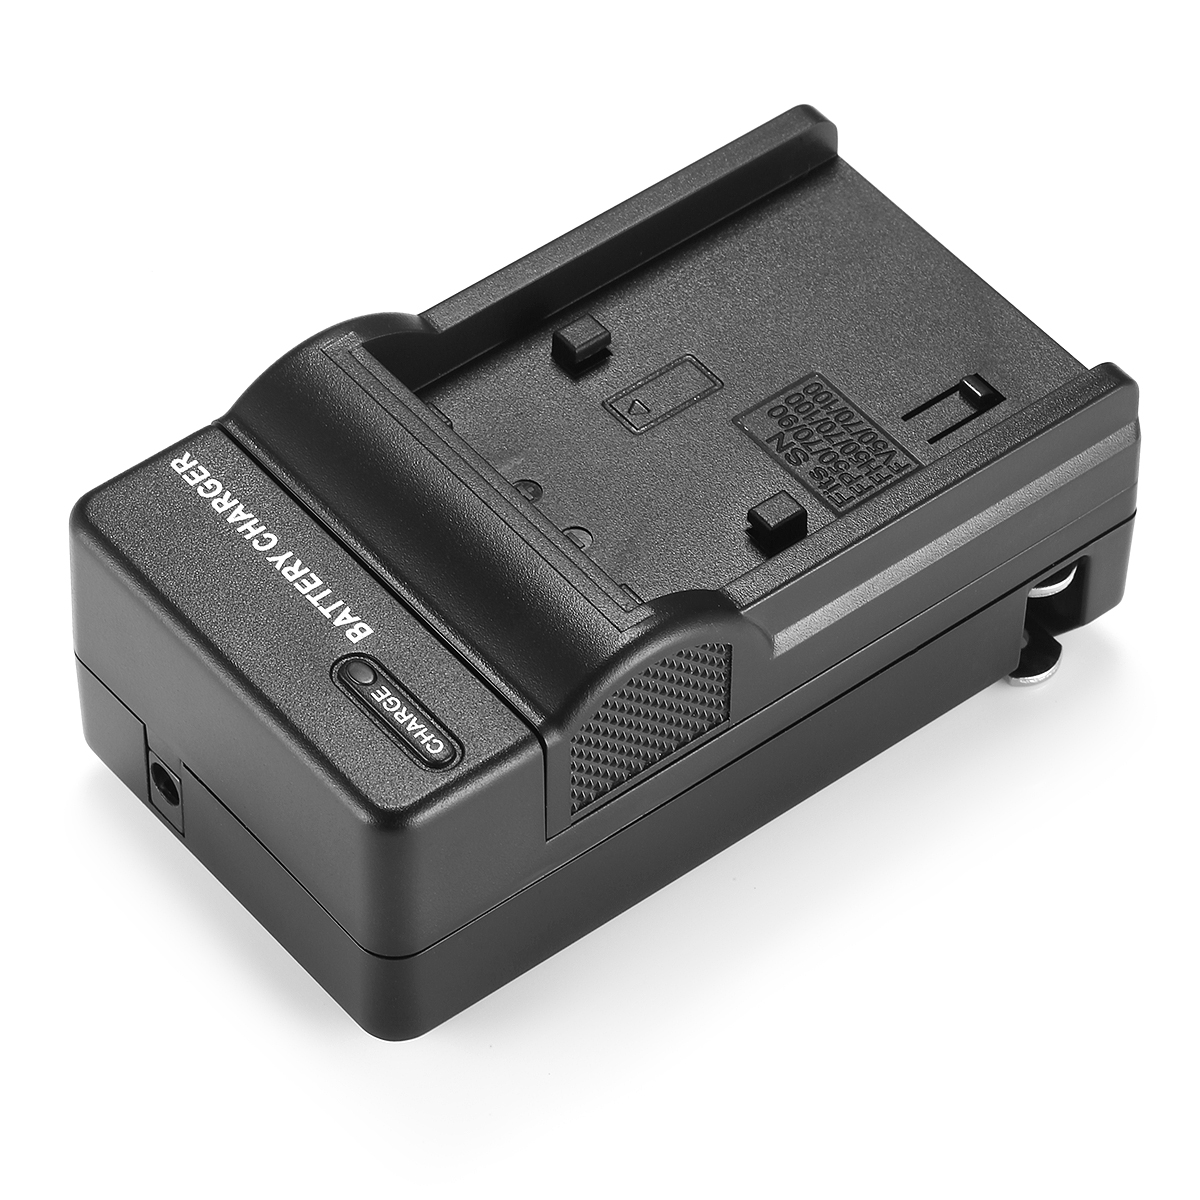 Battery Charger For Sony Np Fh50 Np Fh40 Np Fh30 Alpha